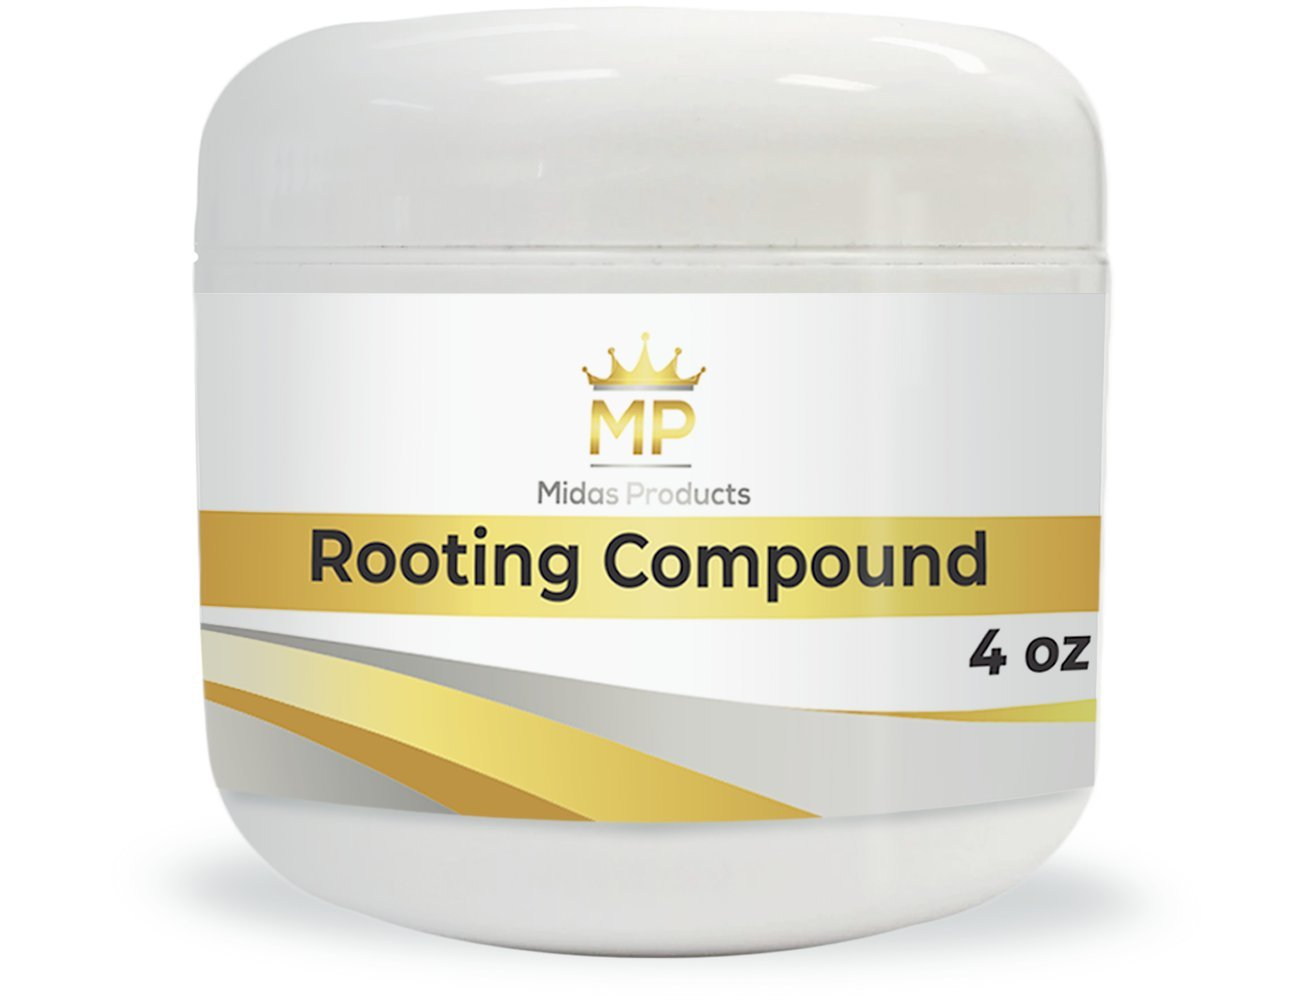 Rooting Gel – IBA Rooting Hormone- Ideal Cloning Gel for Strong Clones - The Key to Plant cloning - Midas Products Rooting Gel Hormone for cuttings 4oz - for Professional and Home Based Growers by Midas Products (Image #1)